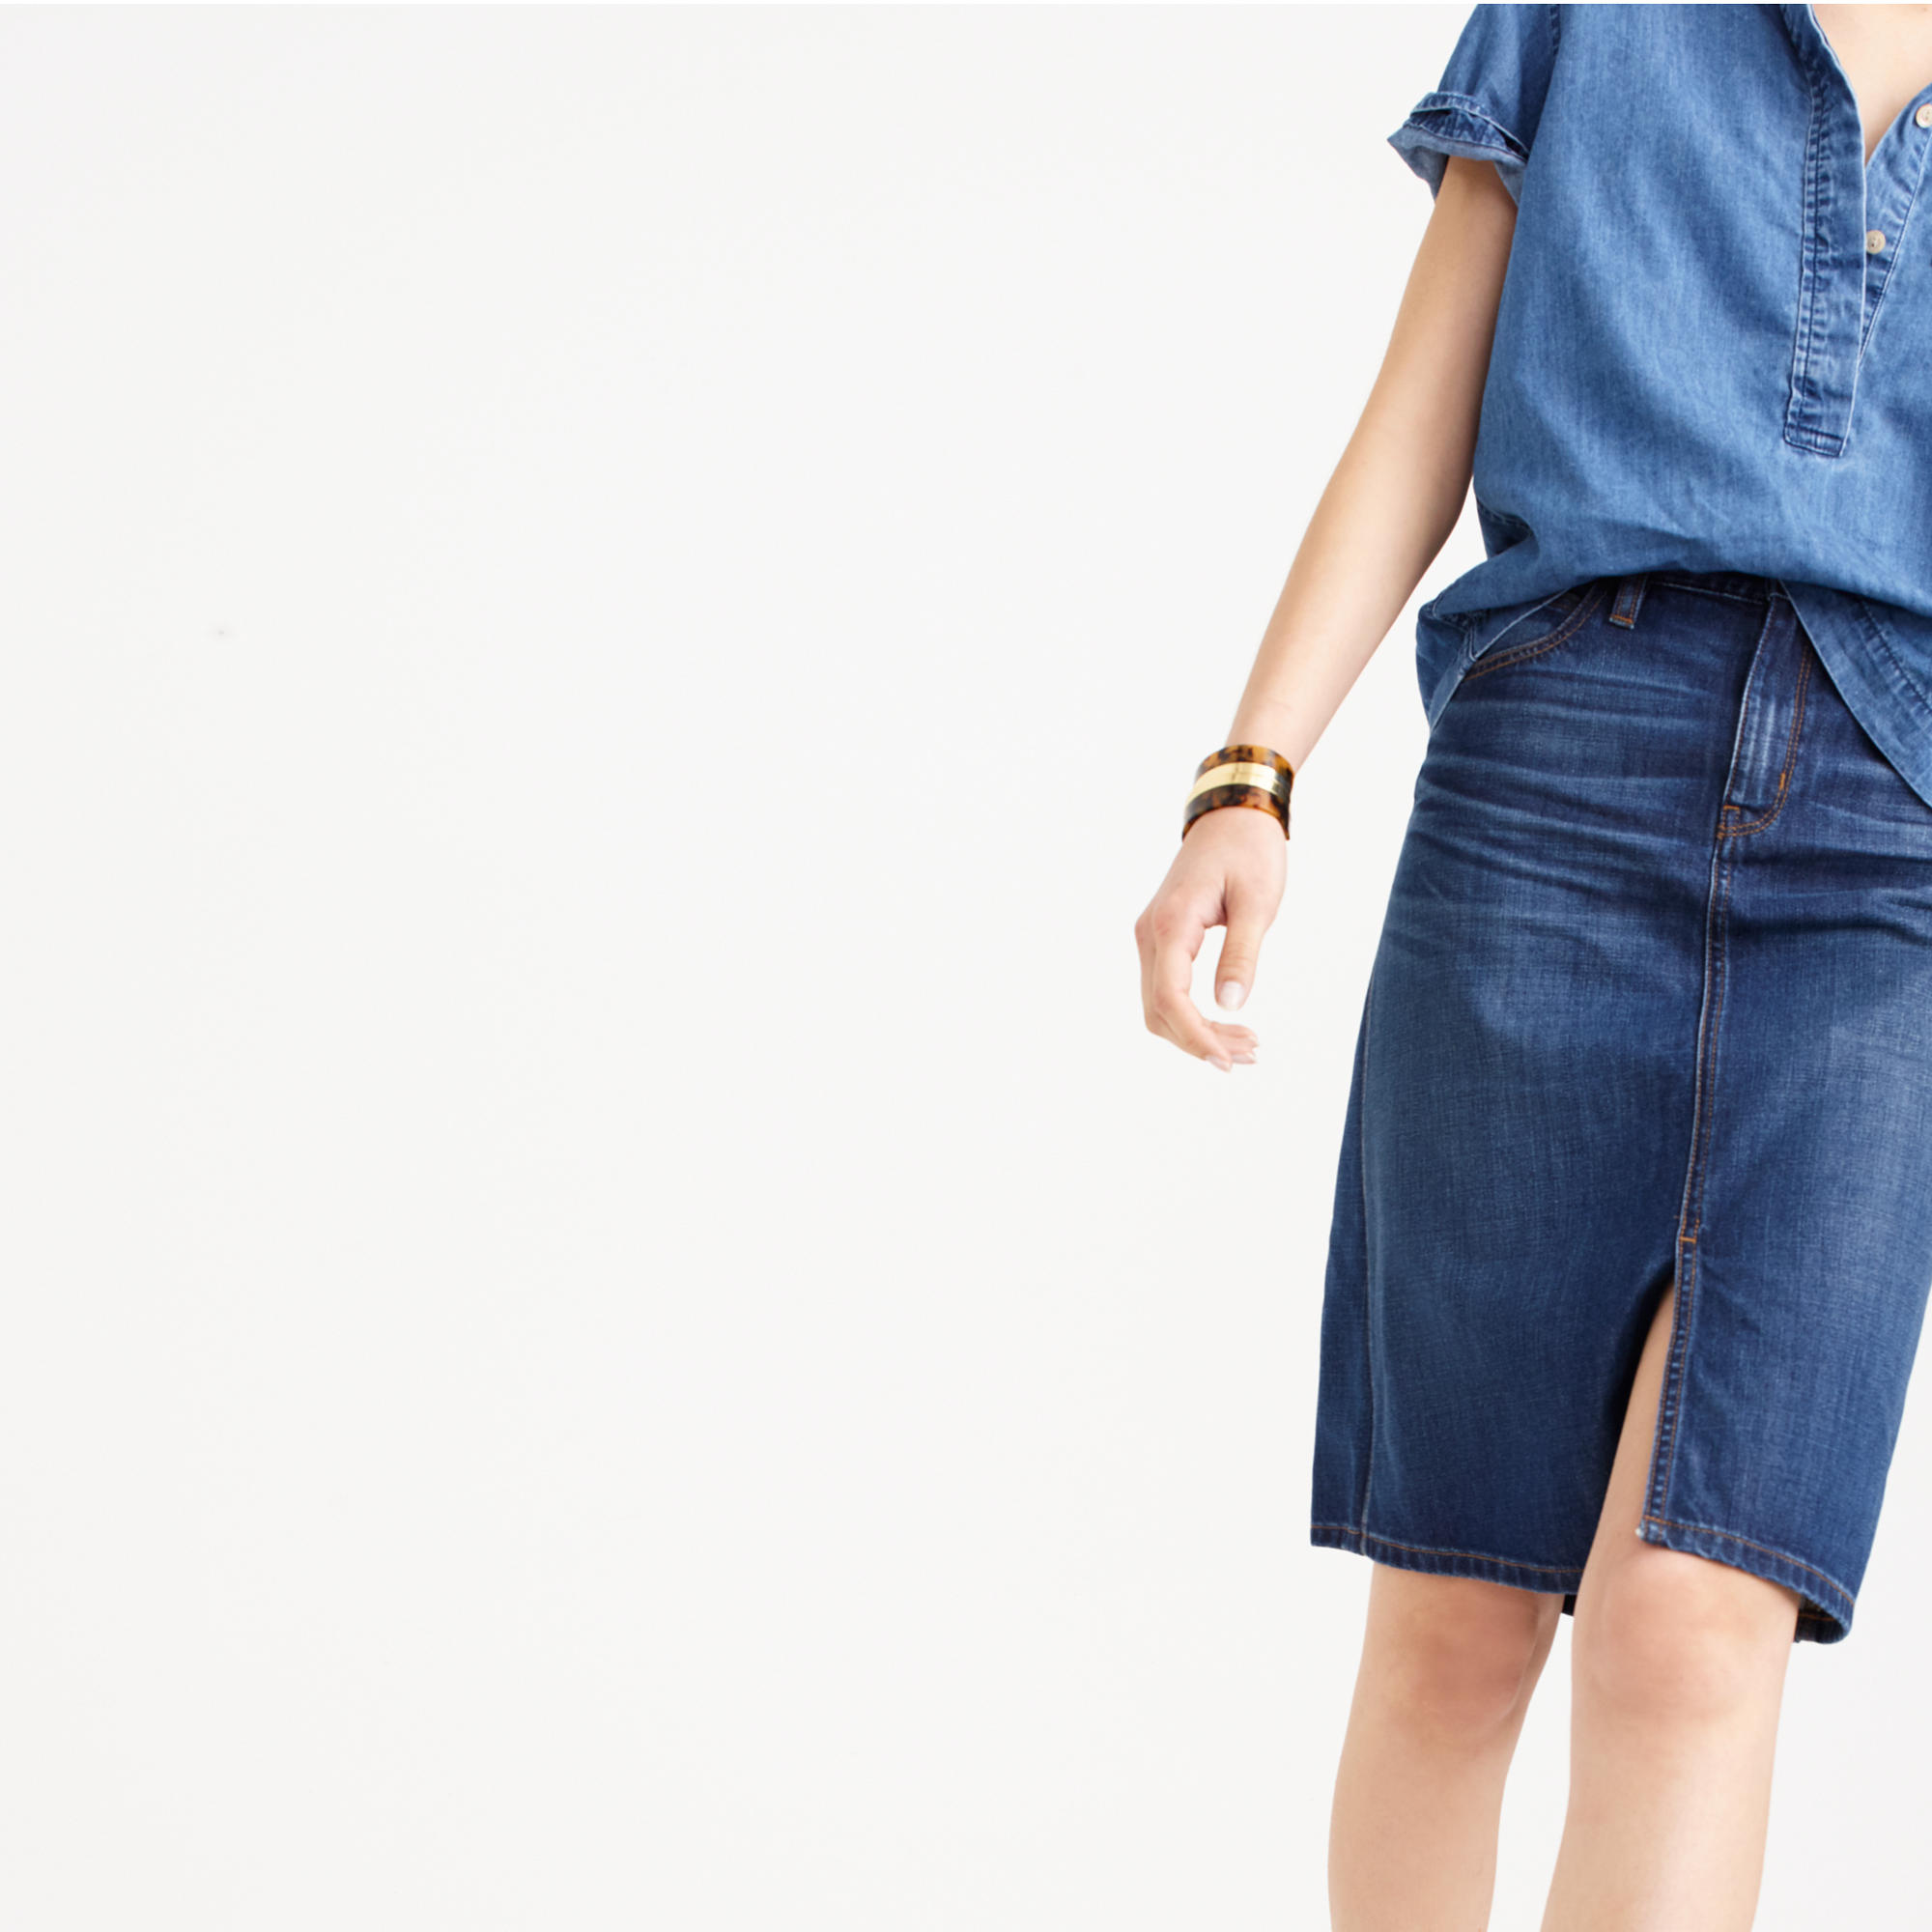 5a9cac2fc0 J Crew Button Front Denim Skirt – DACC